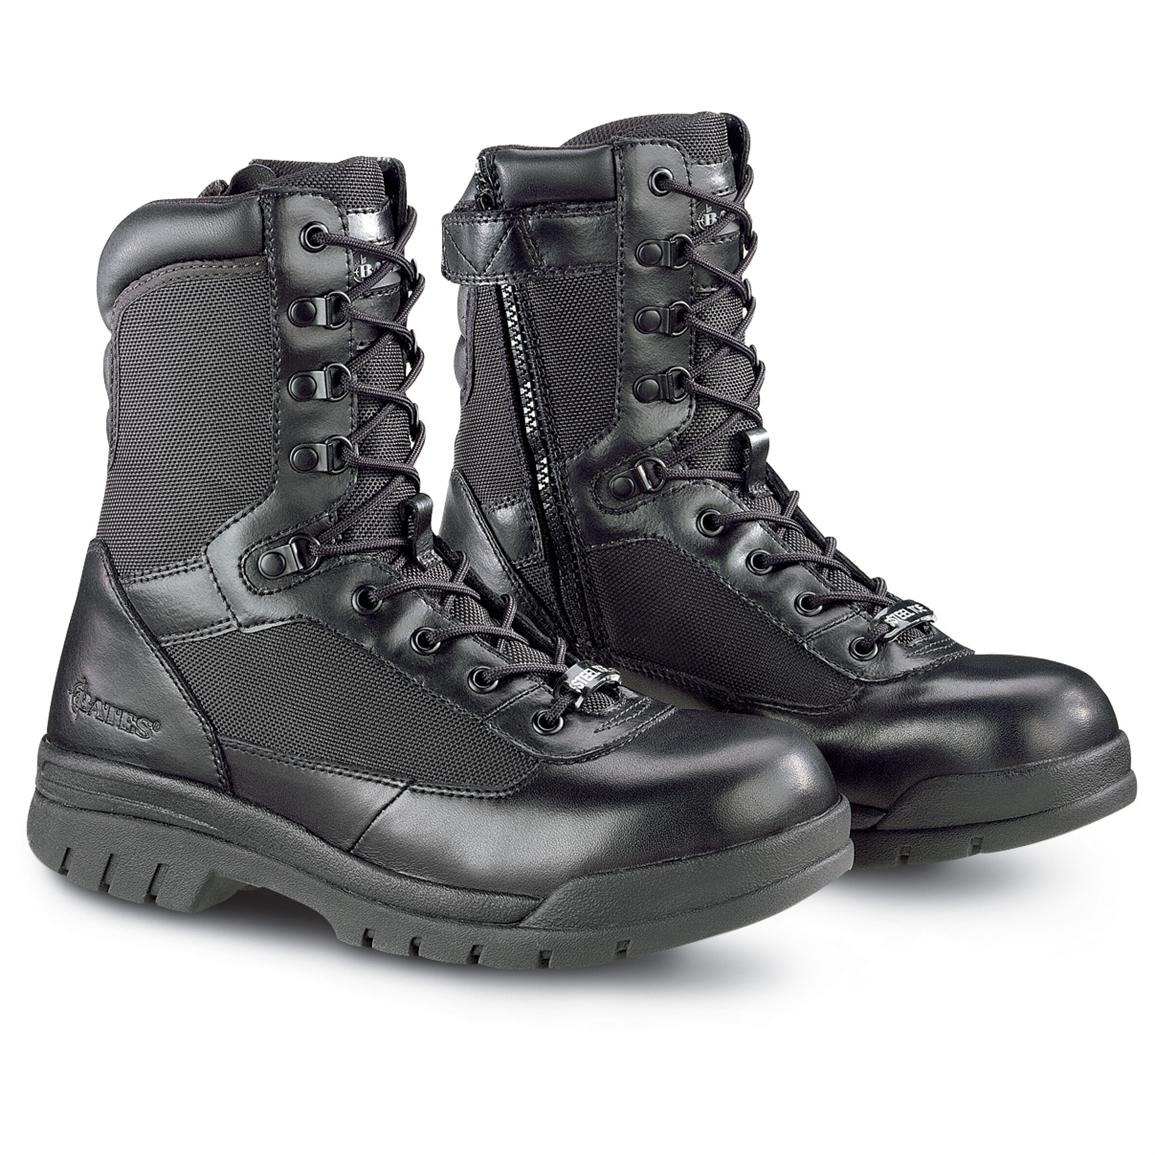 "Men's Bates Enforcer 8"" Side-Zip Steel Toe Combat Boots, Black"